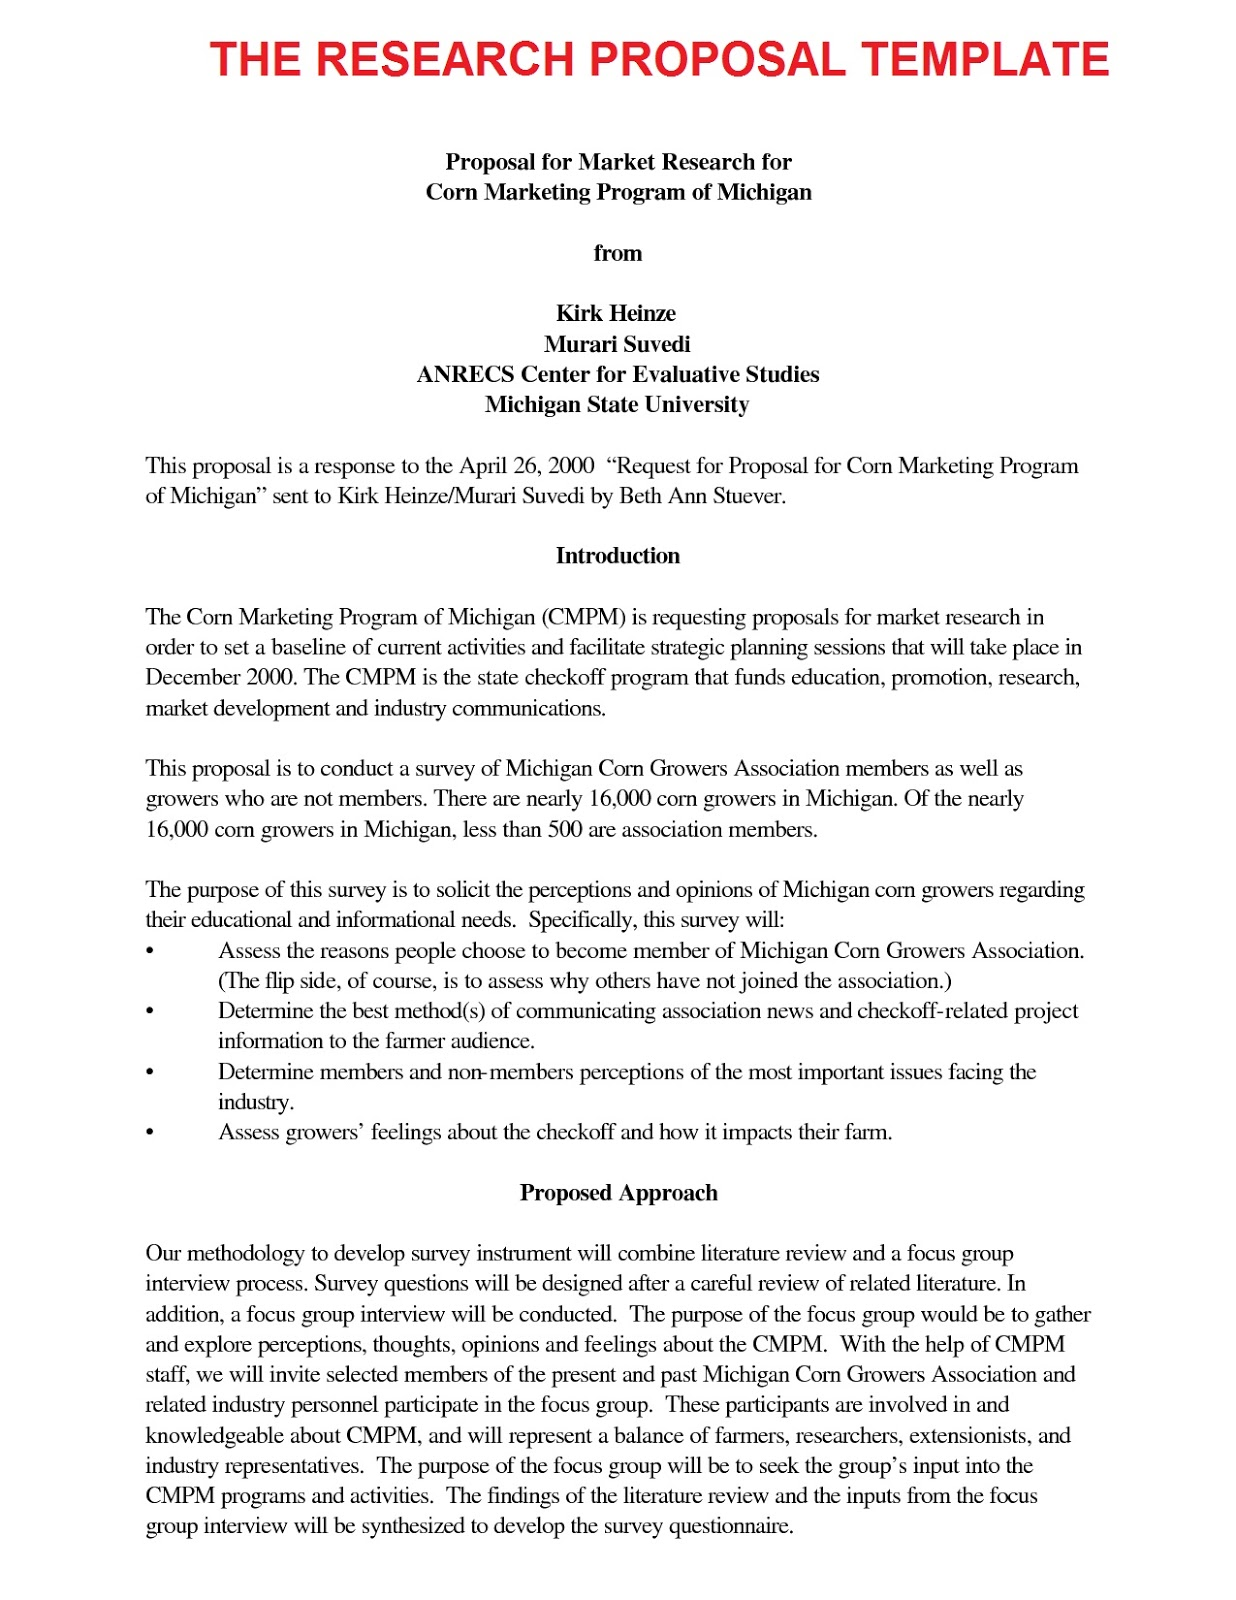 Research Plan Template | Apa Research Proposal Template Trisa Moorddiner Co